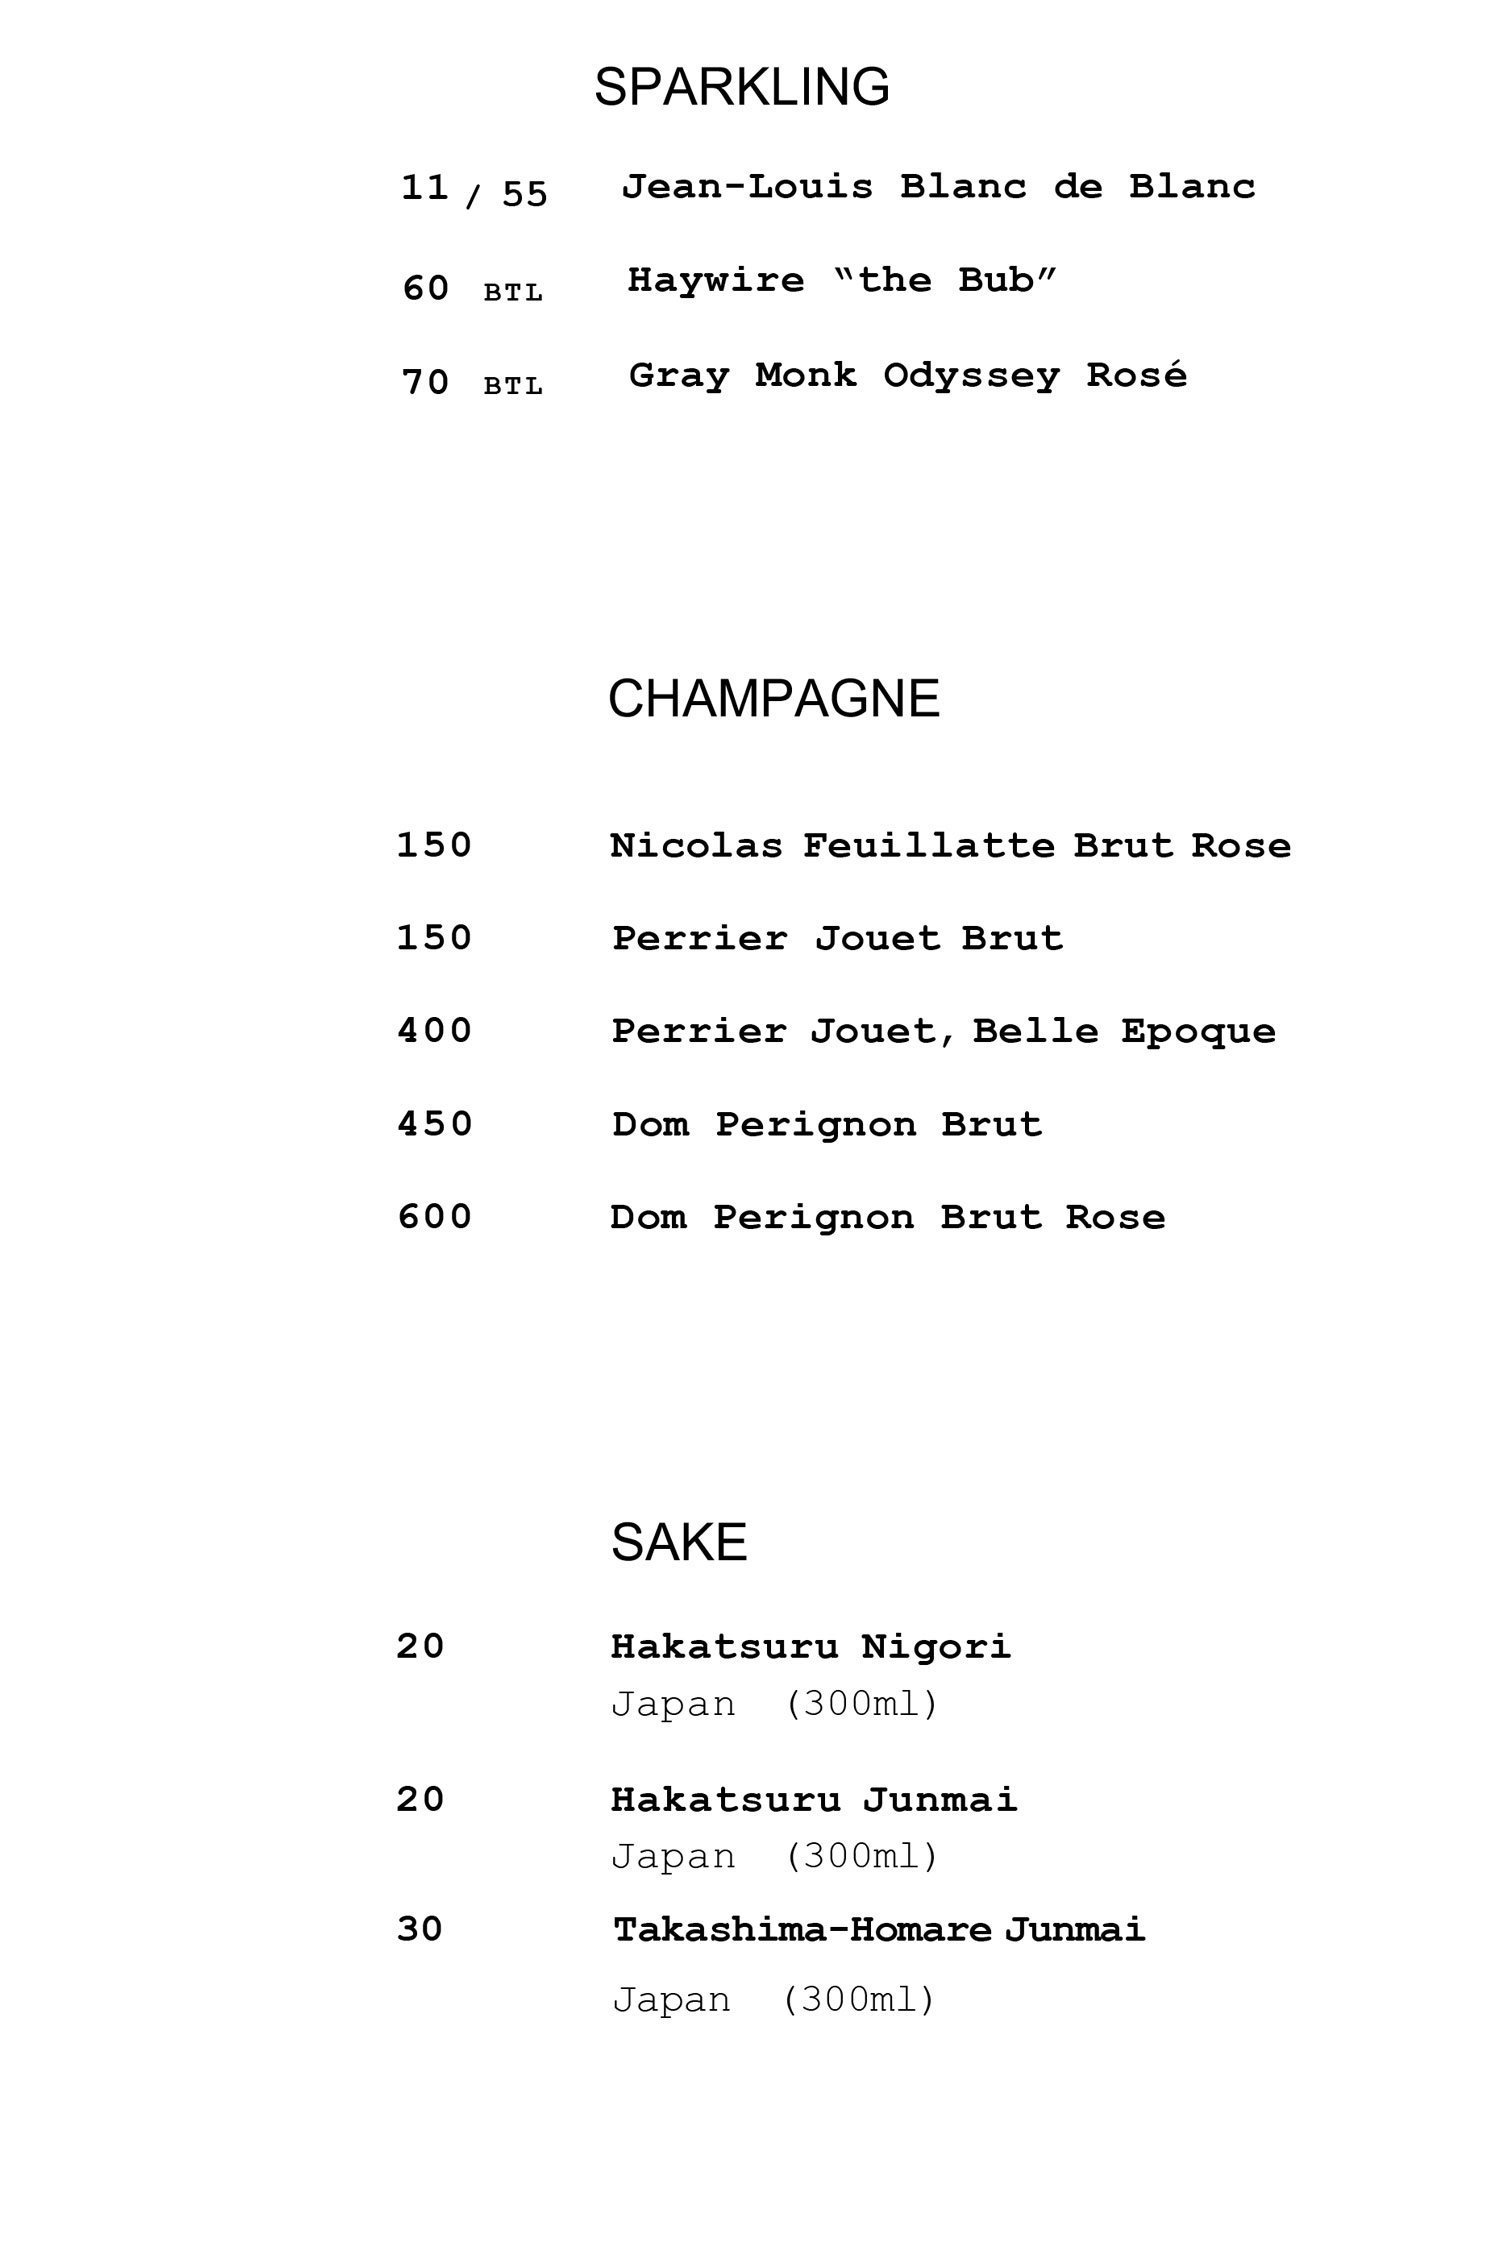 Wine list continued